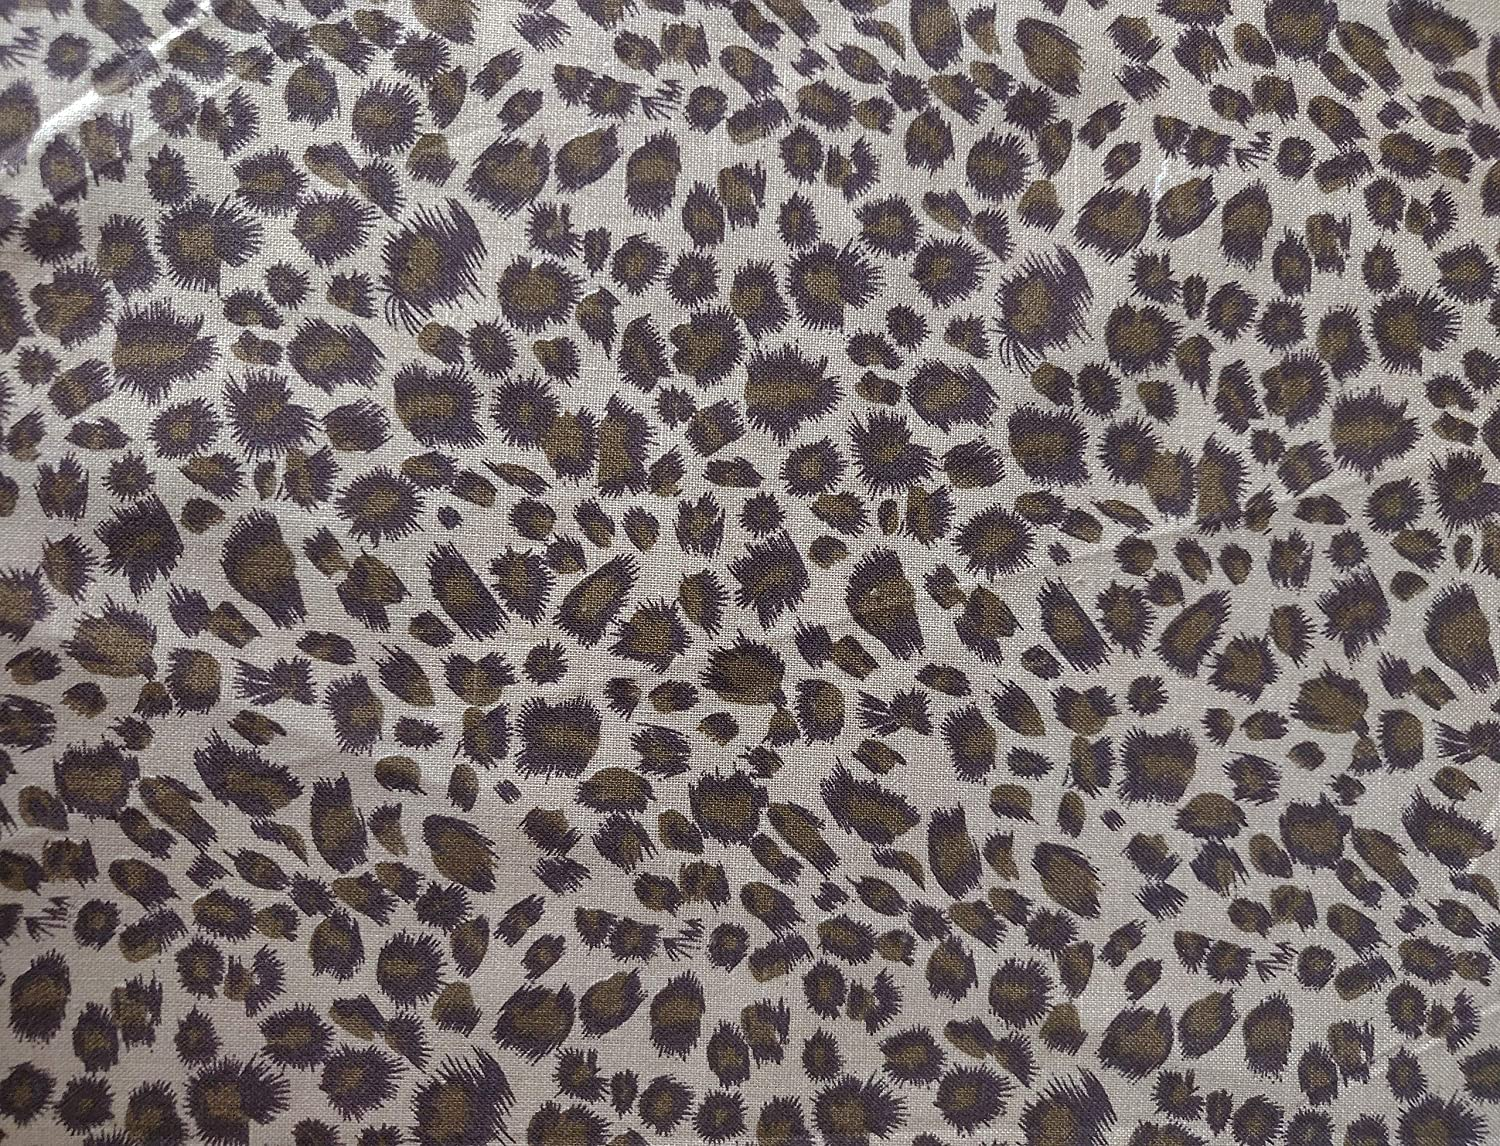 Quilting Fabric Squares Cotton Fabric Squares 45 x 55cm Animals Printed Fabric Bundles 3pcs 18 x 22 inches Leopard Pattern Fat Quarters Fabric Bundles Sewing Fabric